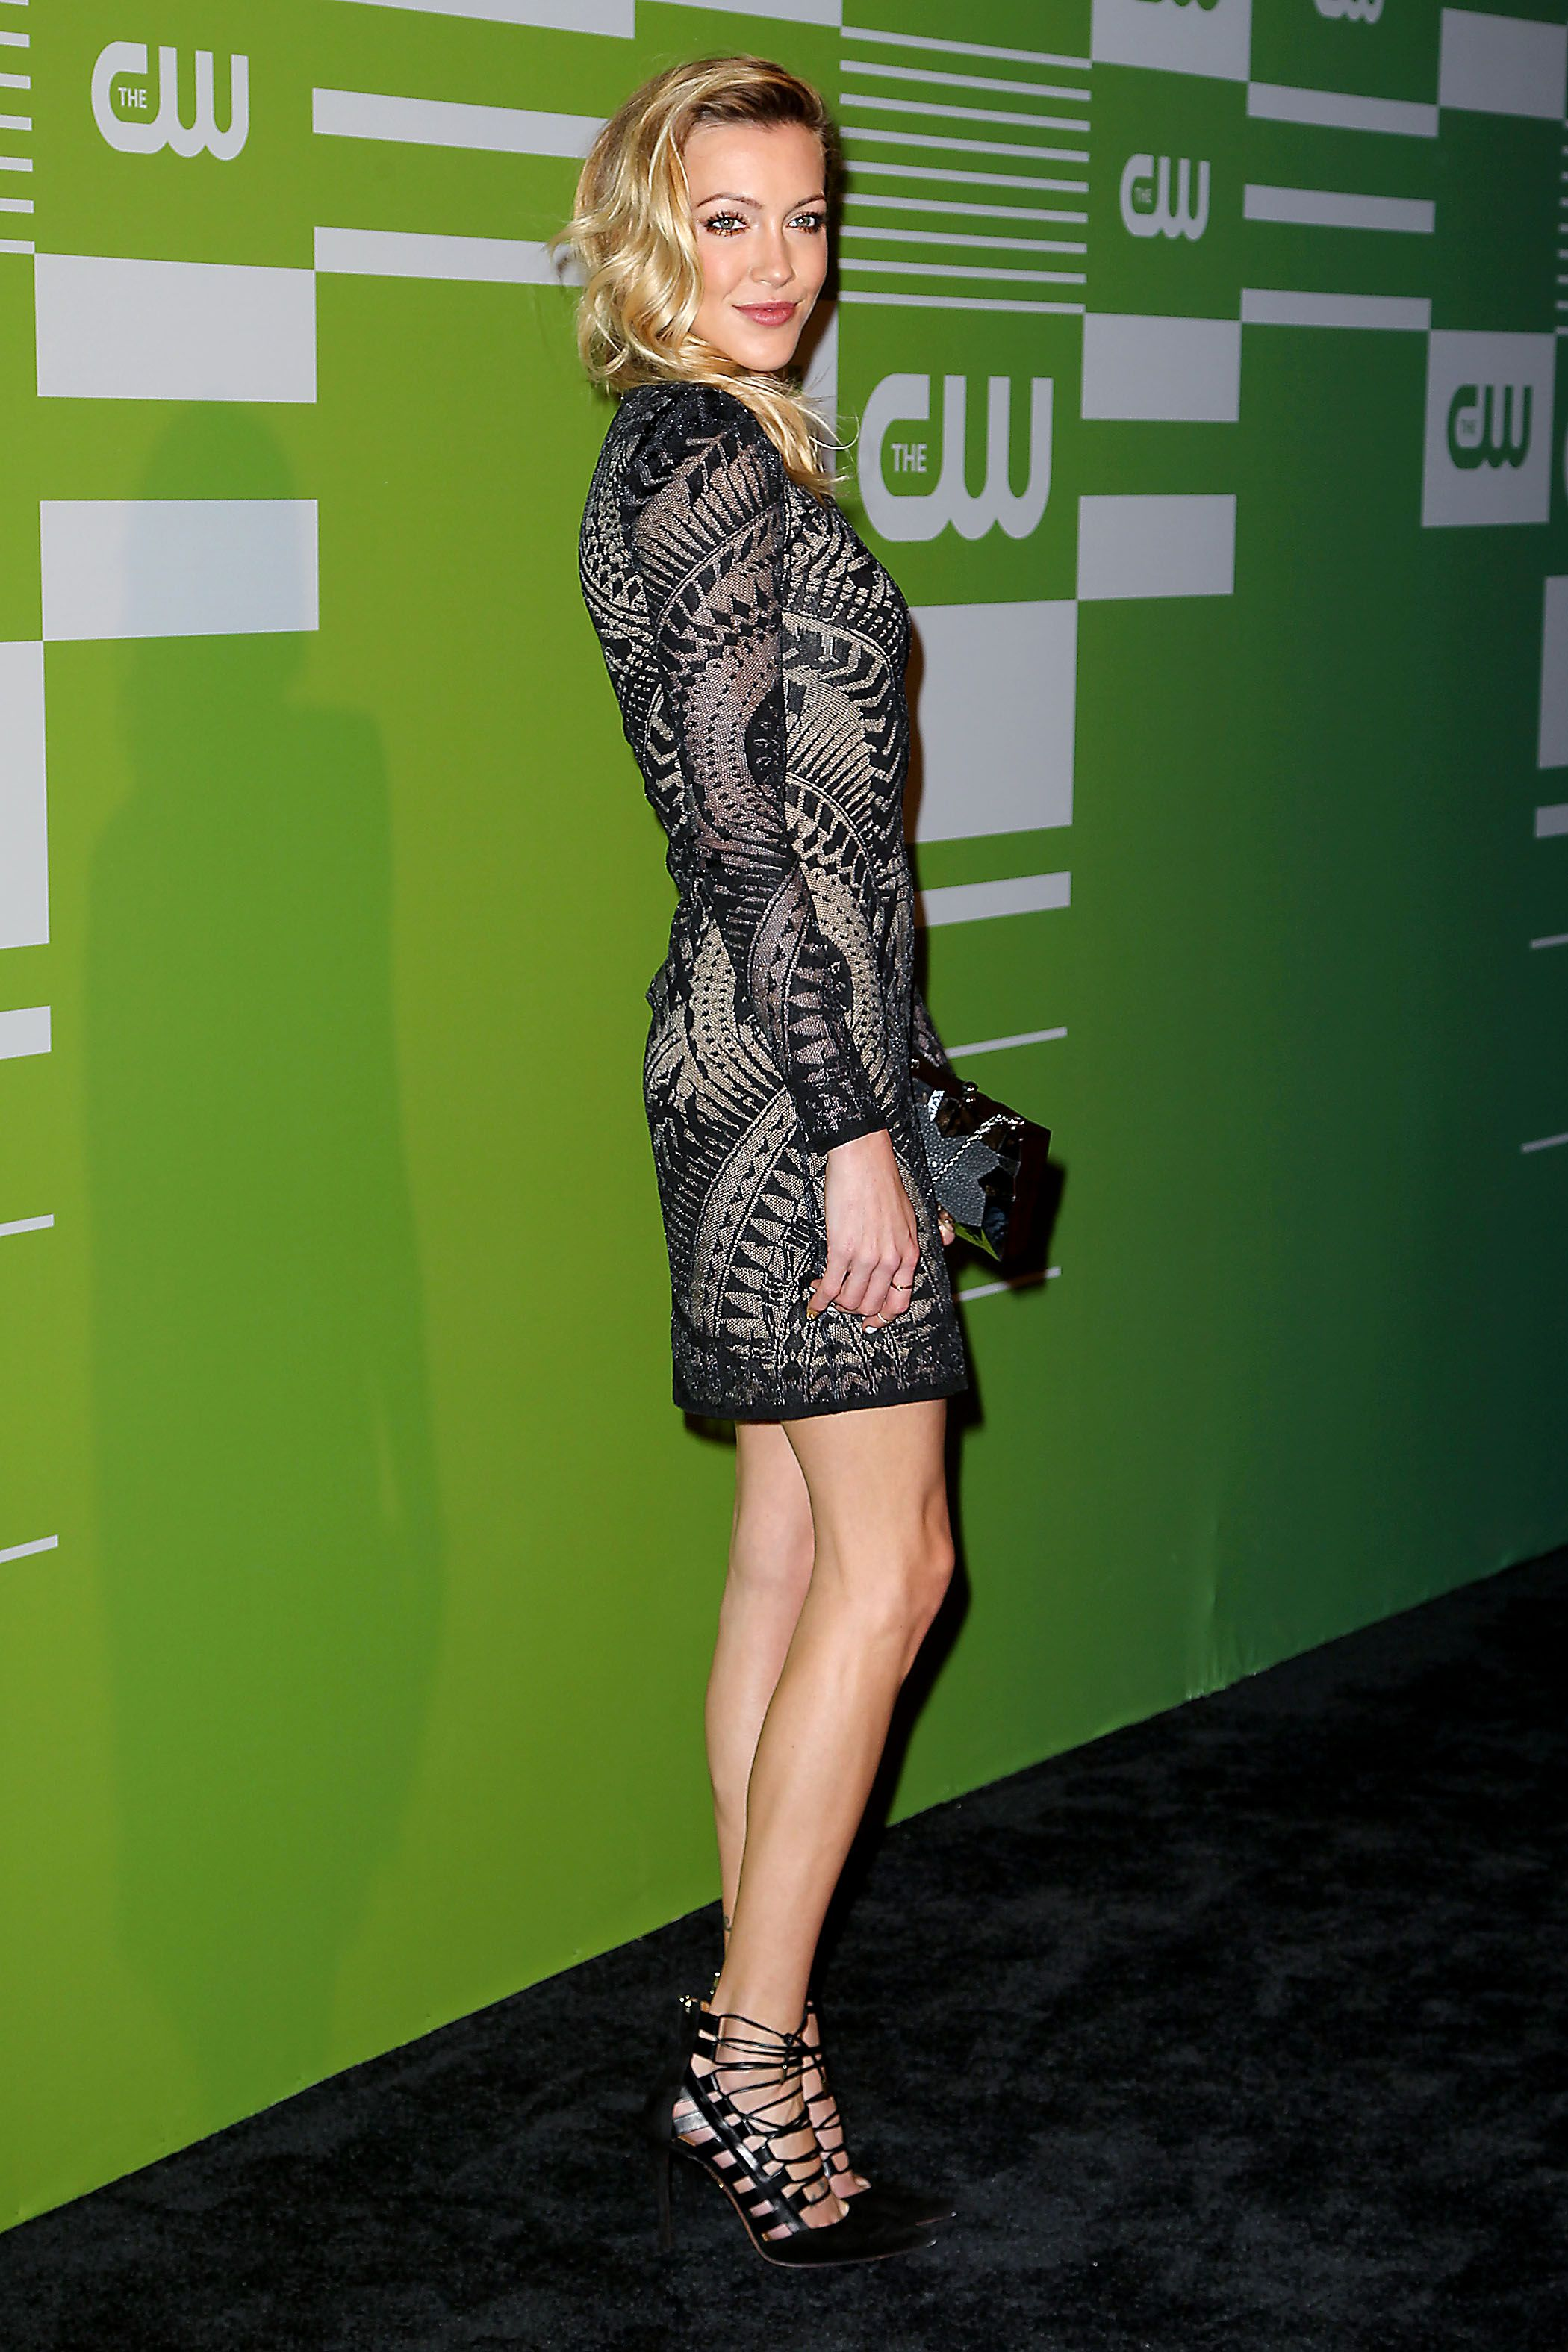 Katie Cassidy attends the CW Network's New York 2015 Upfront Presentation at The London Hotel on May 14, 2015 in New York City.